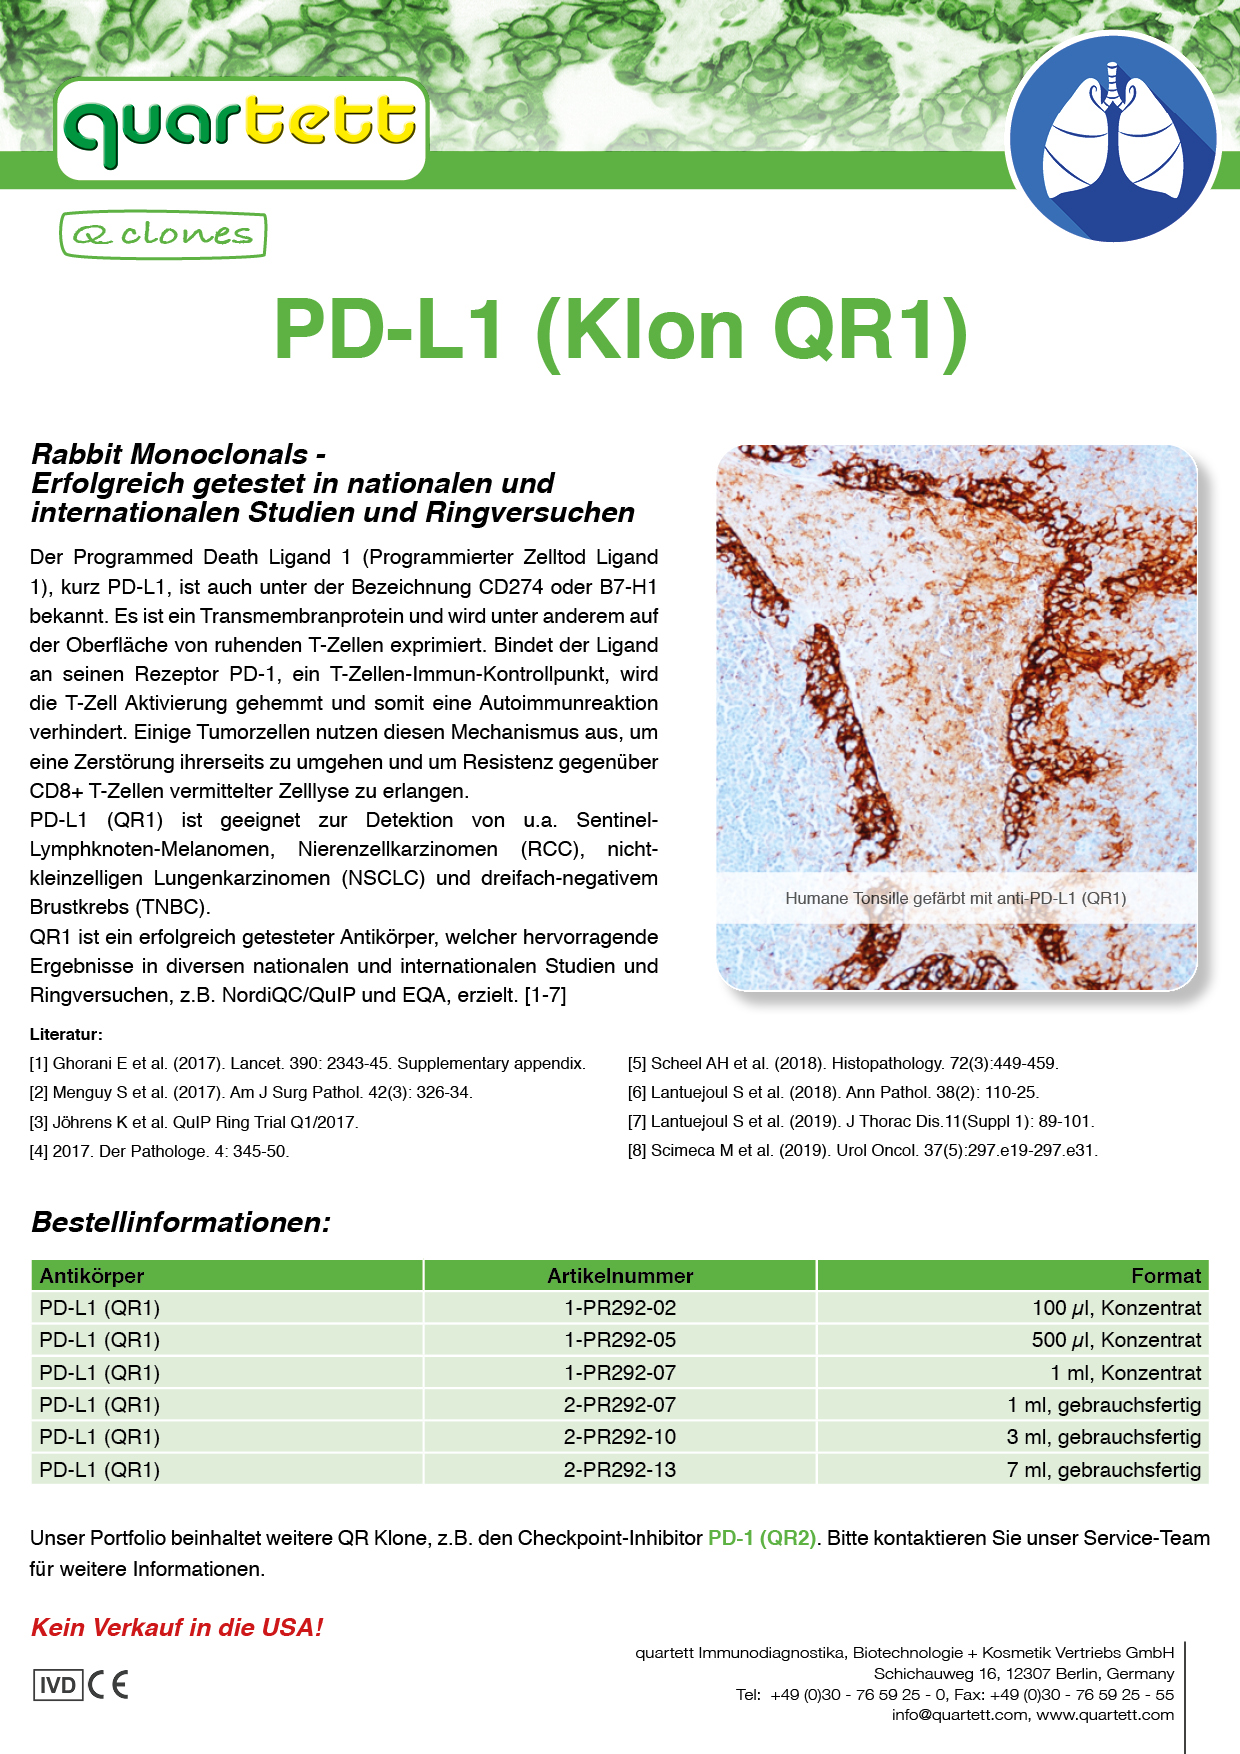 PD-L1 (QR1) -PR292- (Deutsch & English)